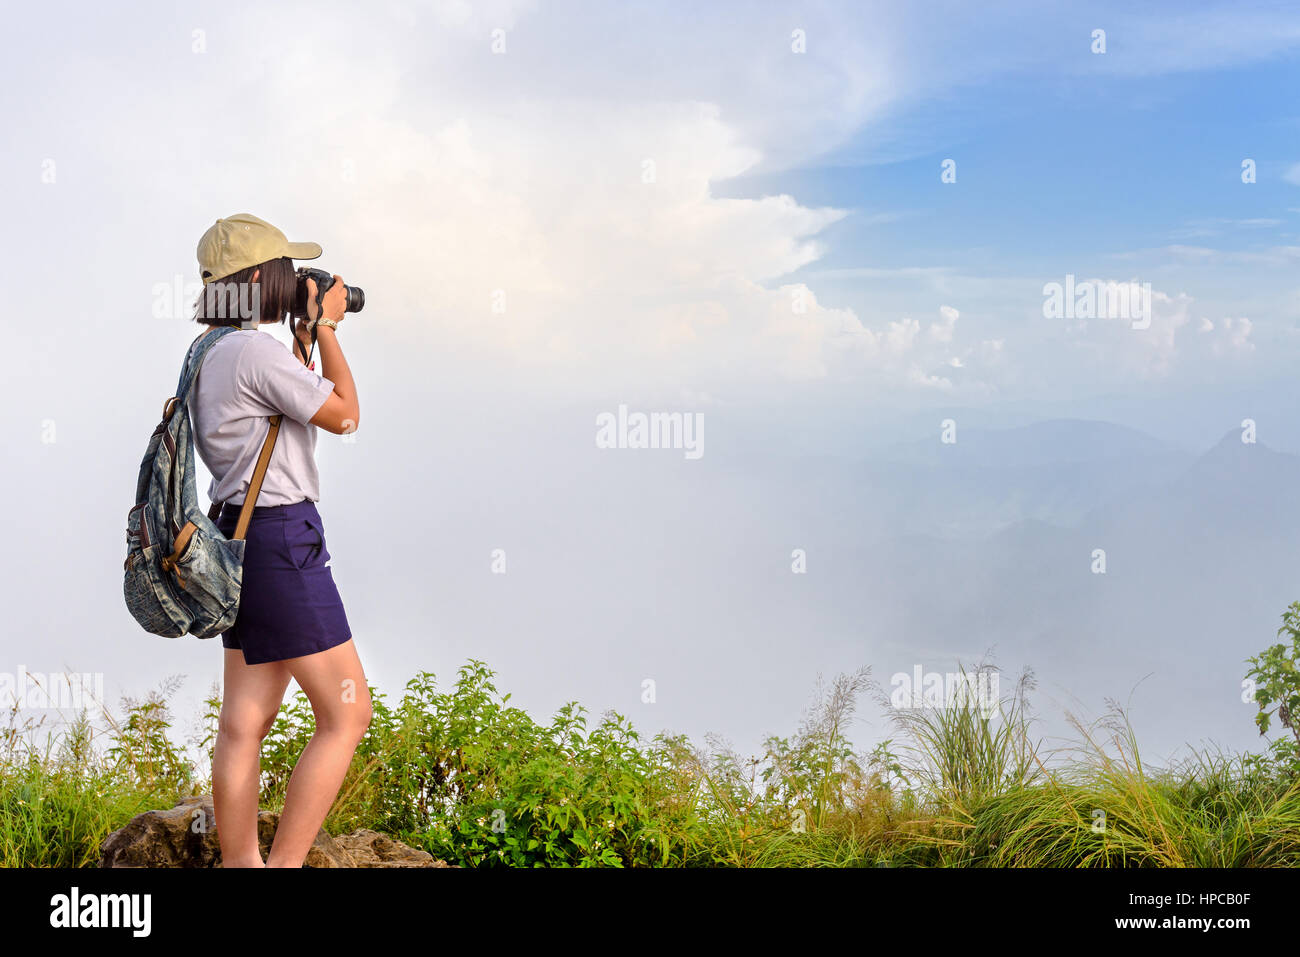 Chinese Teens Images, Stock Photos & Vectors | Shutterstock | 958x1300